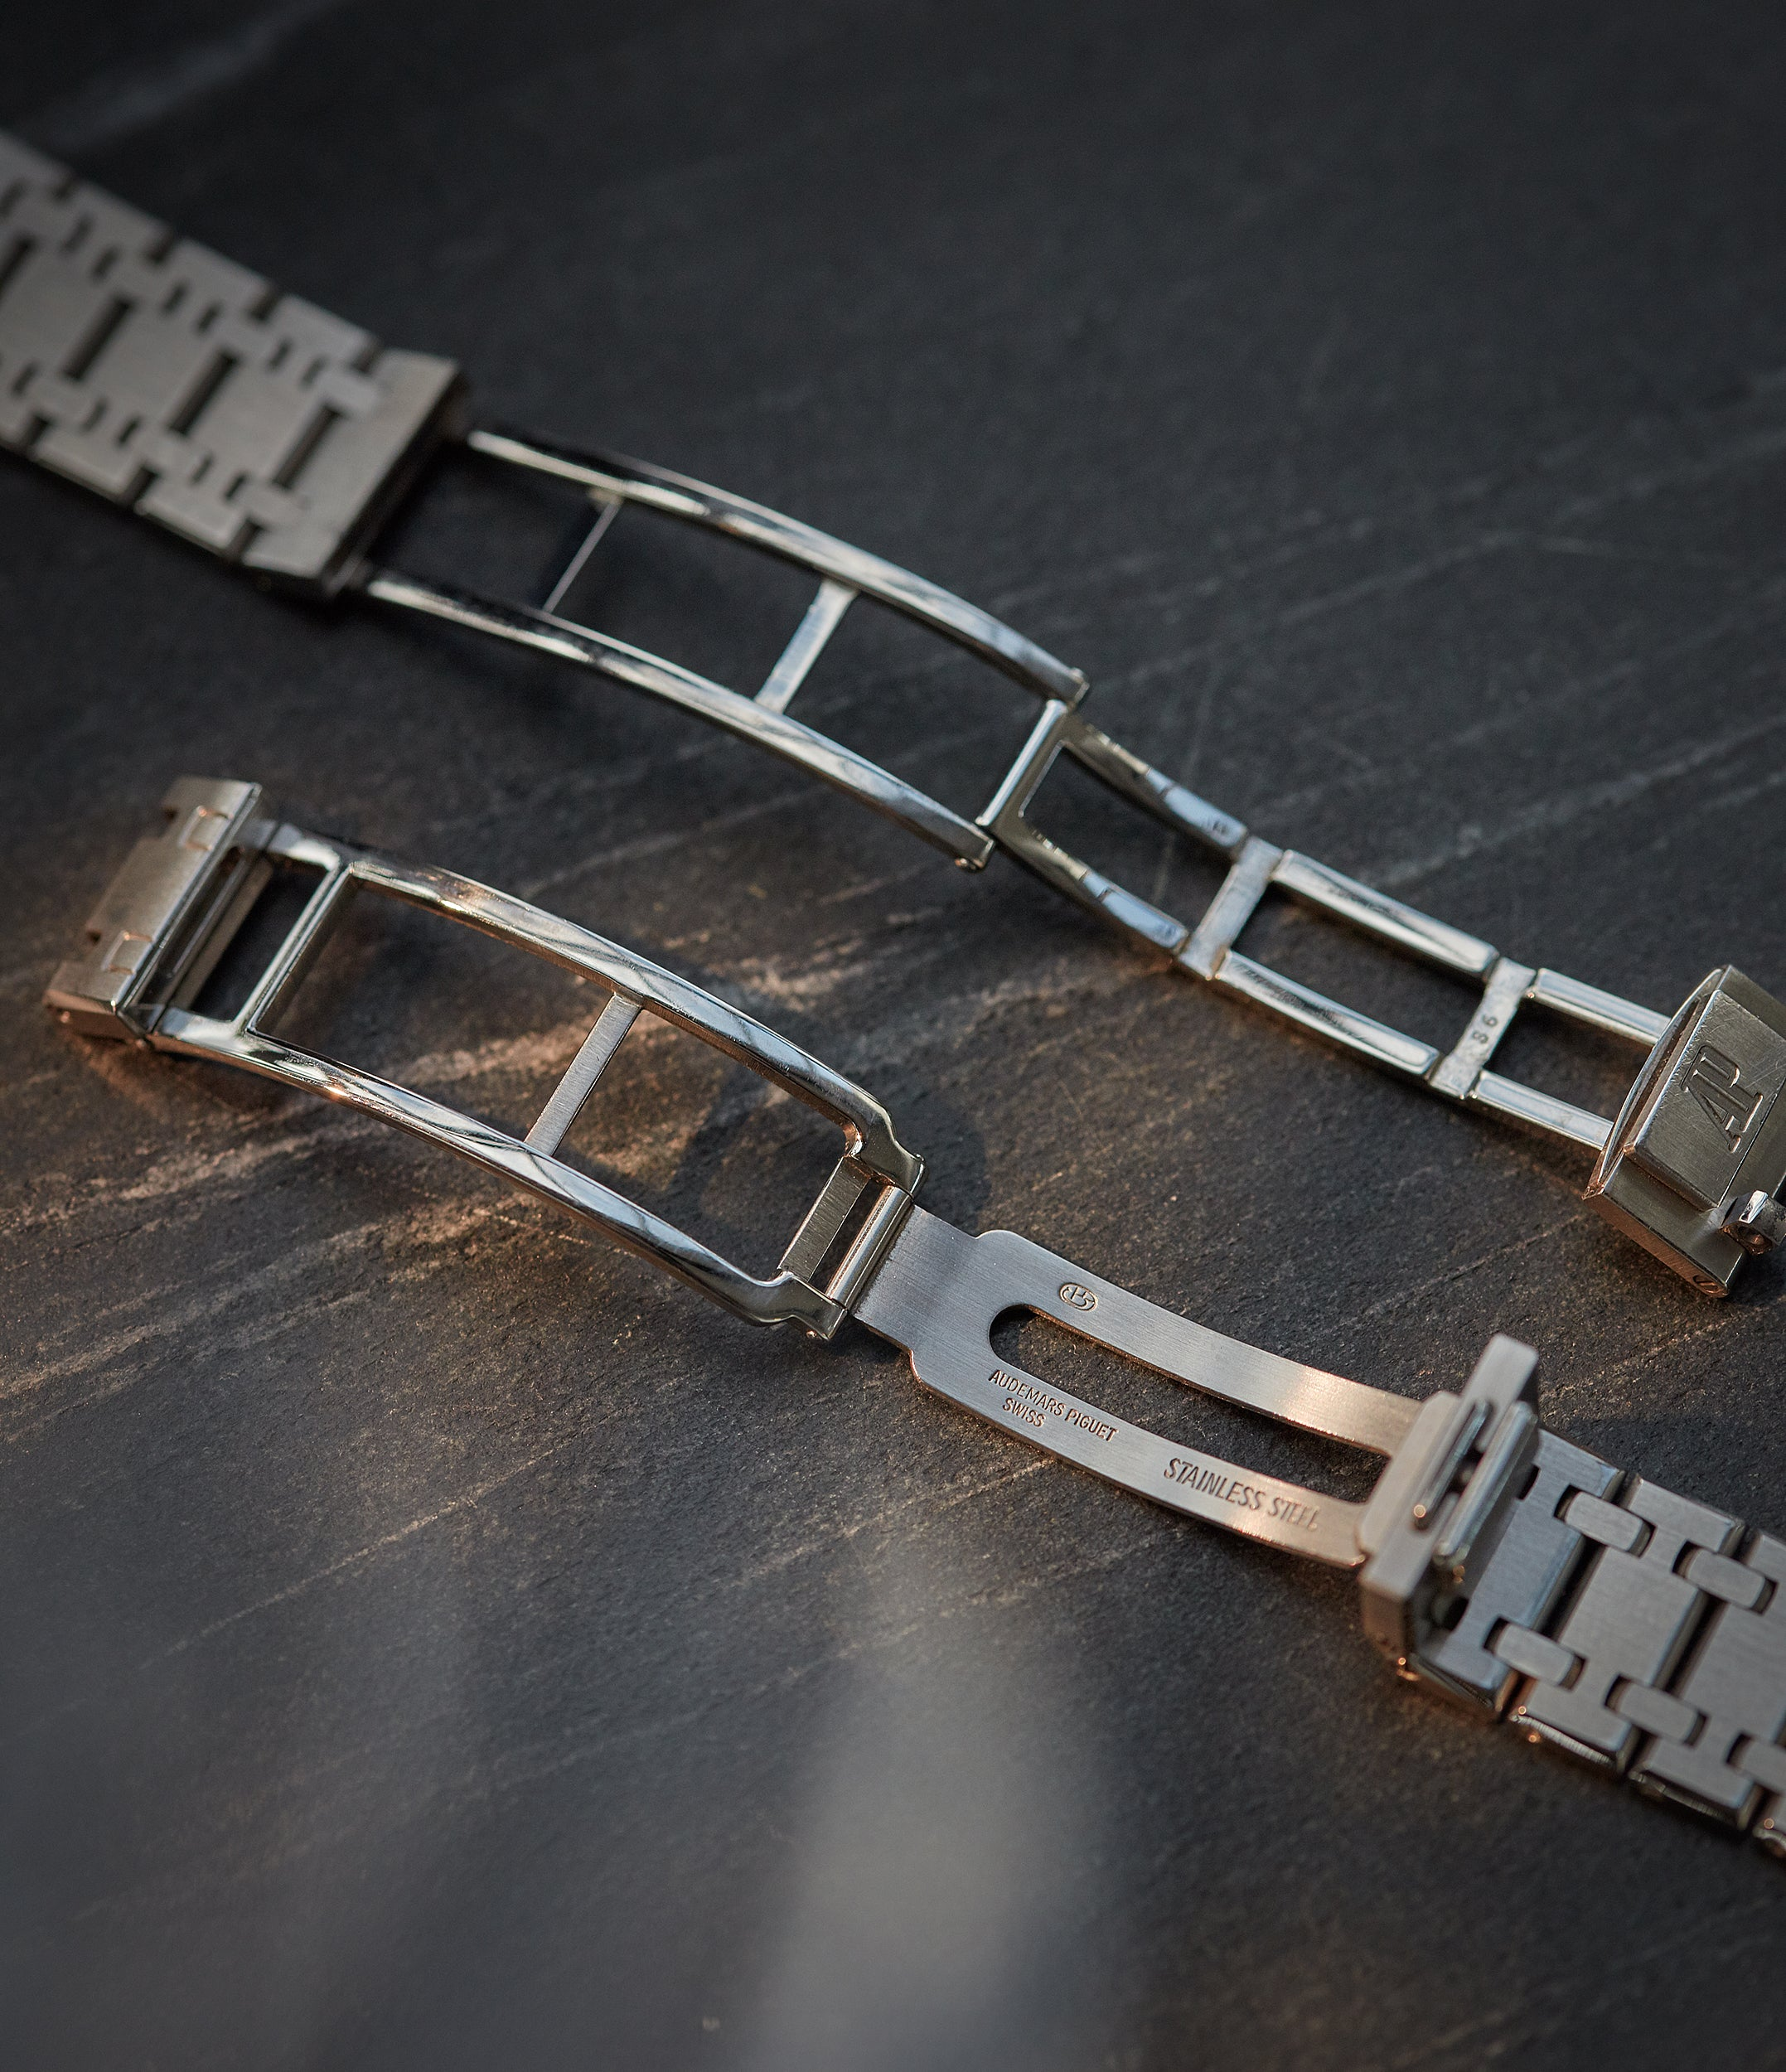 Audemars Piguet Royal Oak 14790 first series and second series clasps side by side for A Collected Man London